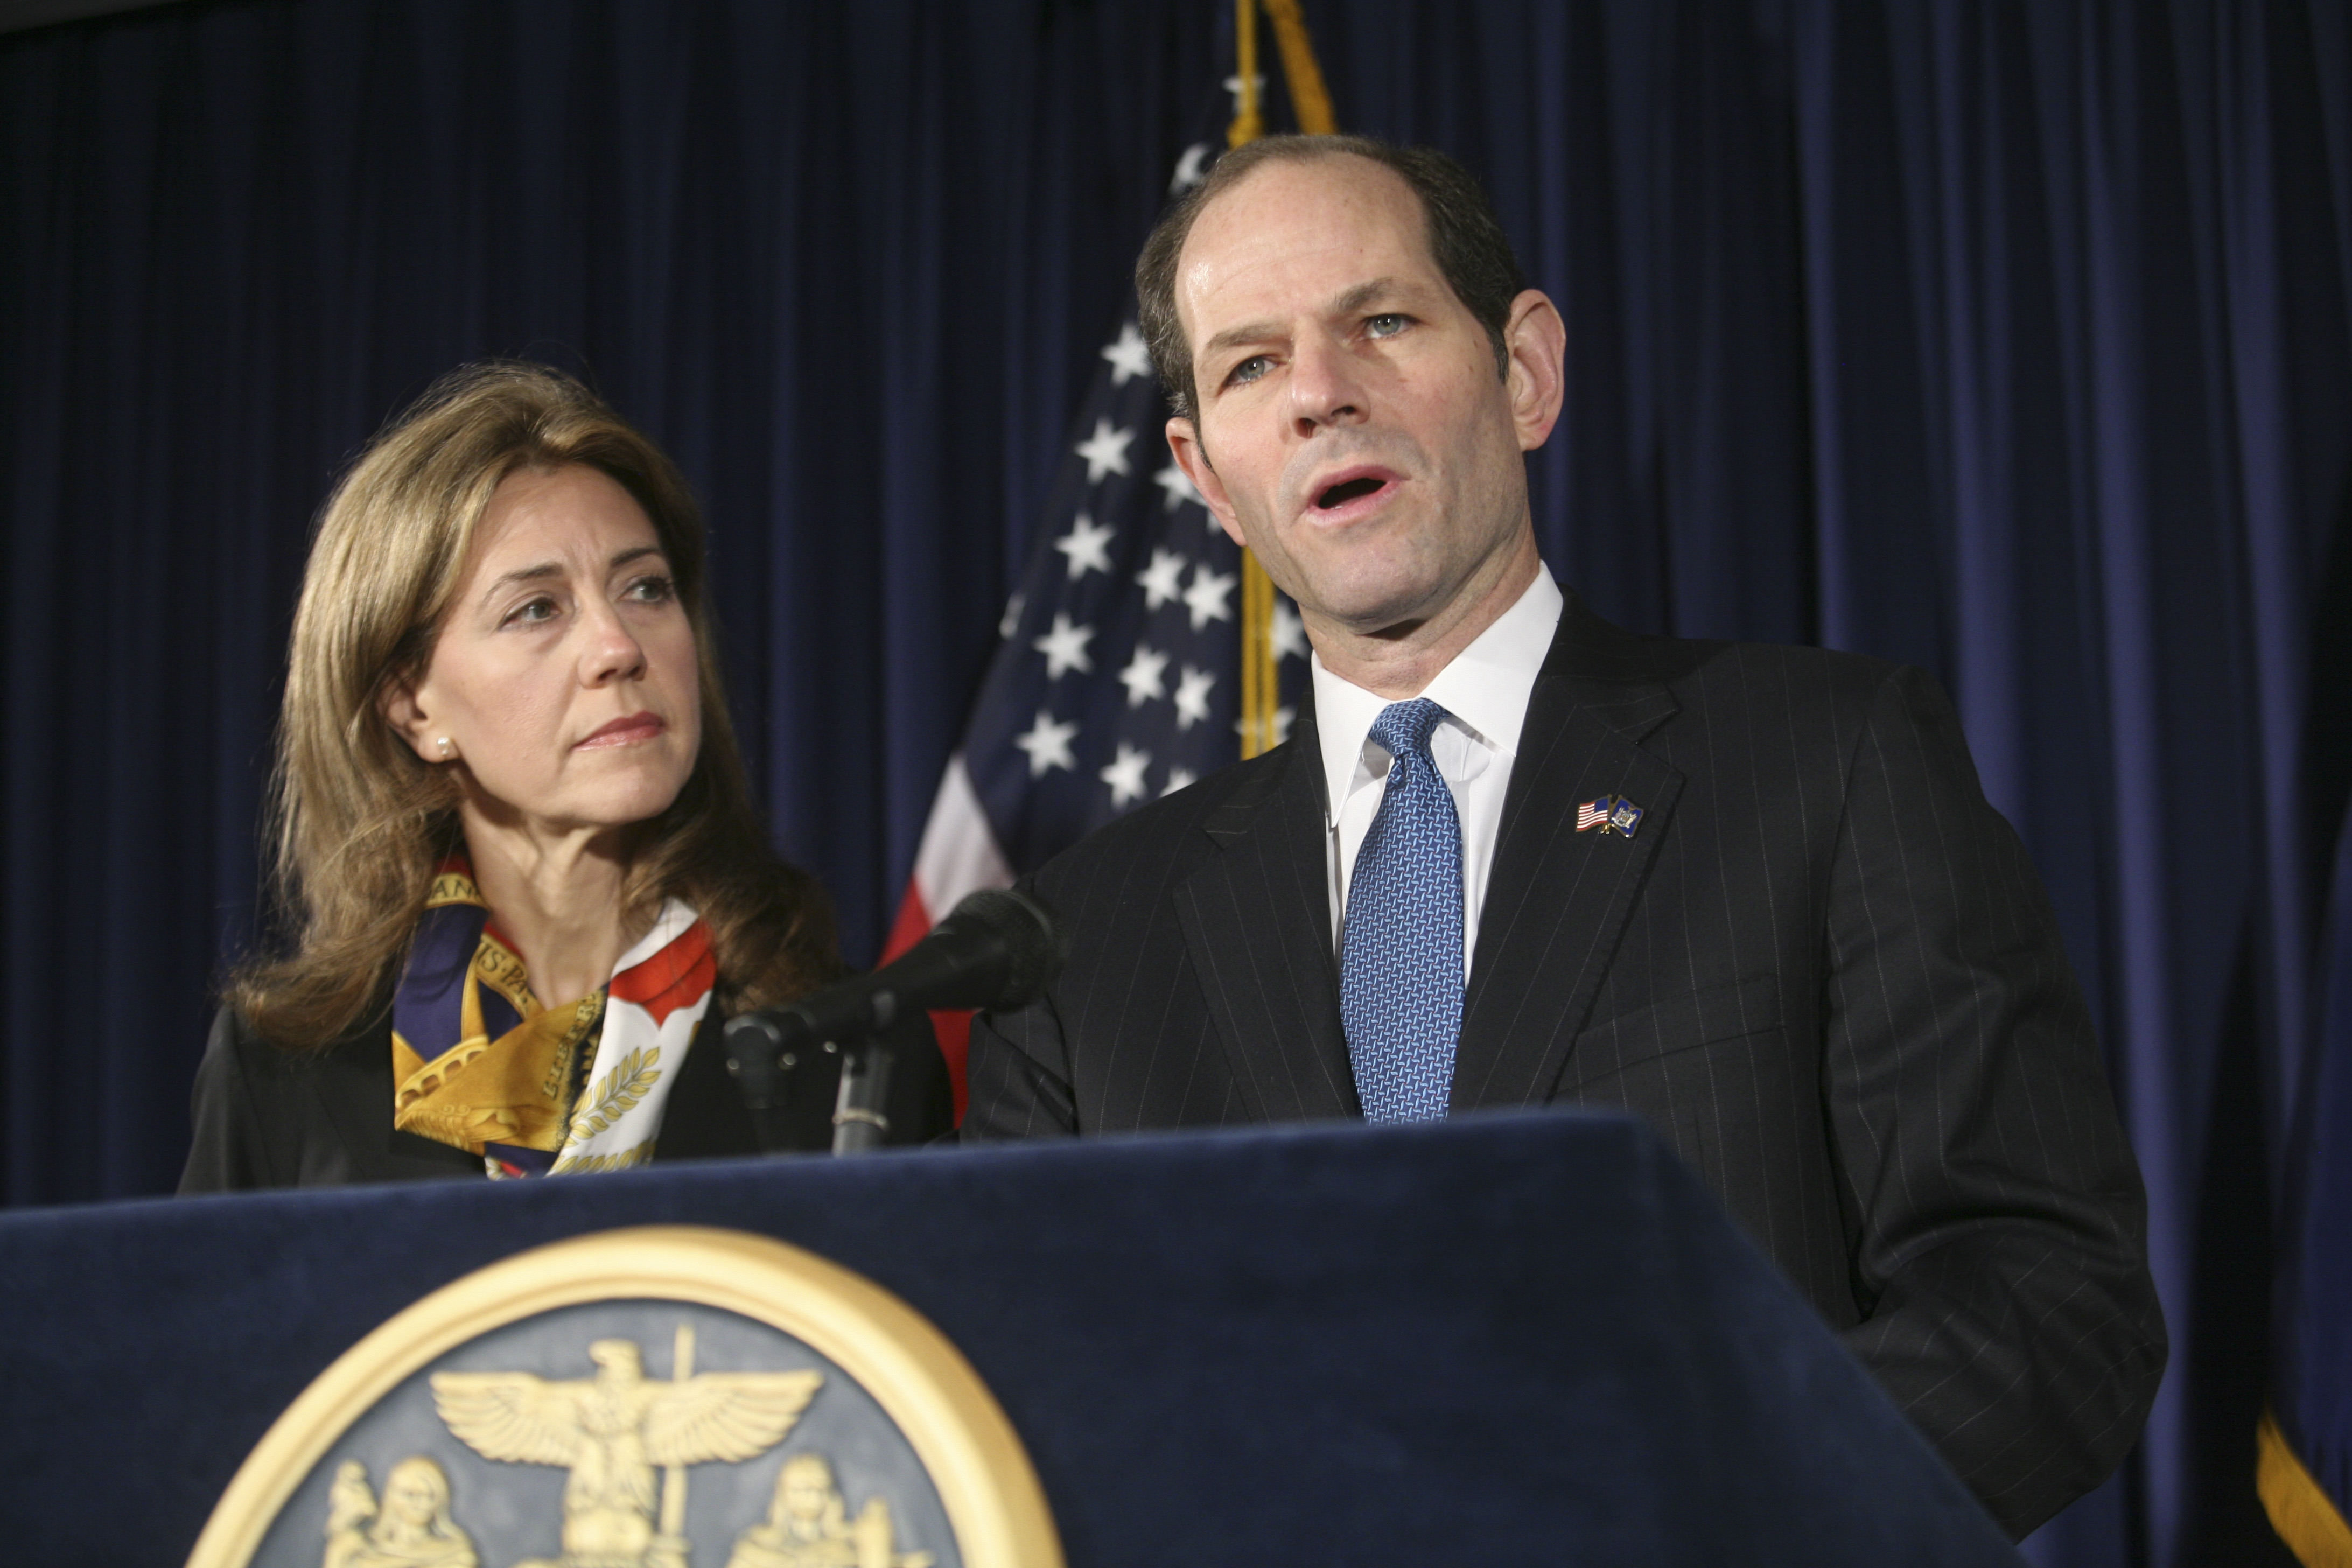 """FILE — Silda Wall Spitzer stands by her husband, Eliot Spitzer, as he announces his resignation as governor, in New York, March 12, 2008. Two decades worth of political sex scandals gave playwright Bruce Norris inspiration for his new dark comedy """"Domesticated"""", an examination of the compromises inherent in all marriages. (Hiroko Masuike/The New York Times) PHOTO MOVED IN ADVANCE AND NOT FOR USE – ONLINE OR IN PRINT – BEFORE OCT. 27, 2013."""